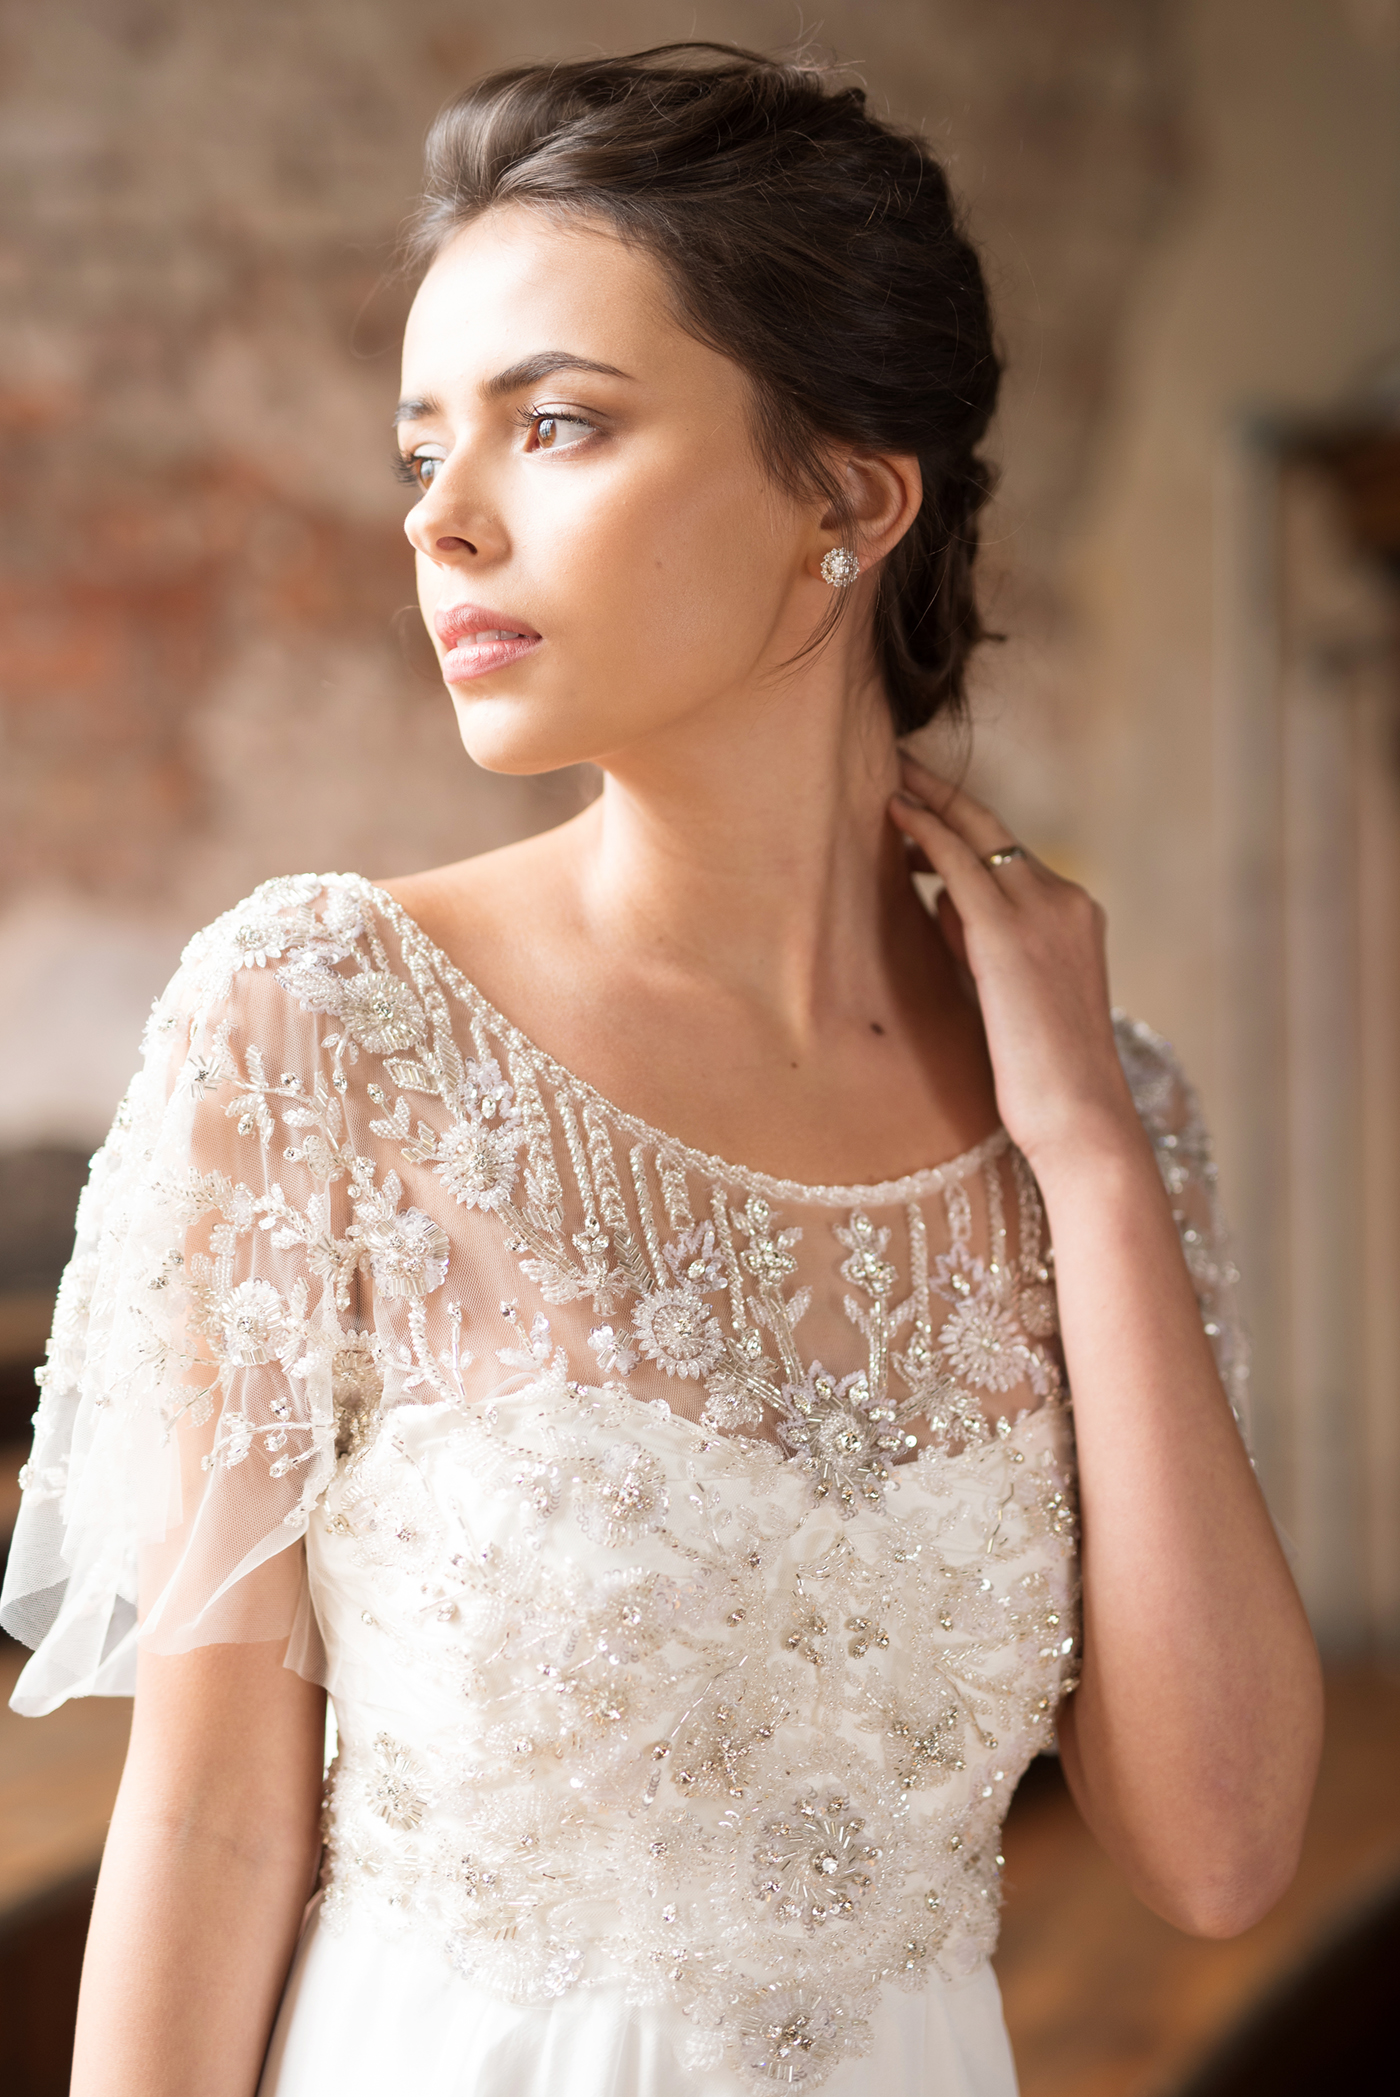 Adele Dress - A distinctive, hand-embellished illusion neckline, softly draped sleeves and open back, the romantic Adele brings a sense of effortless elegance... Styled with the Valencia Stud Earrings.